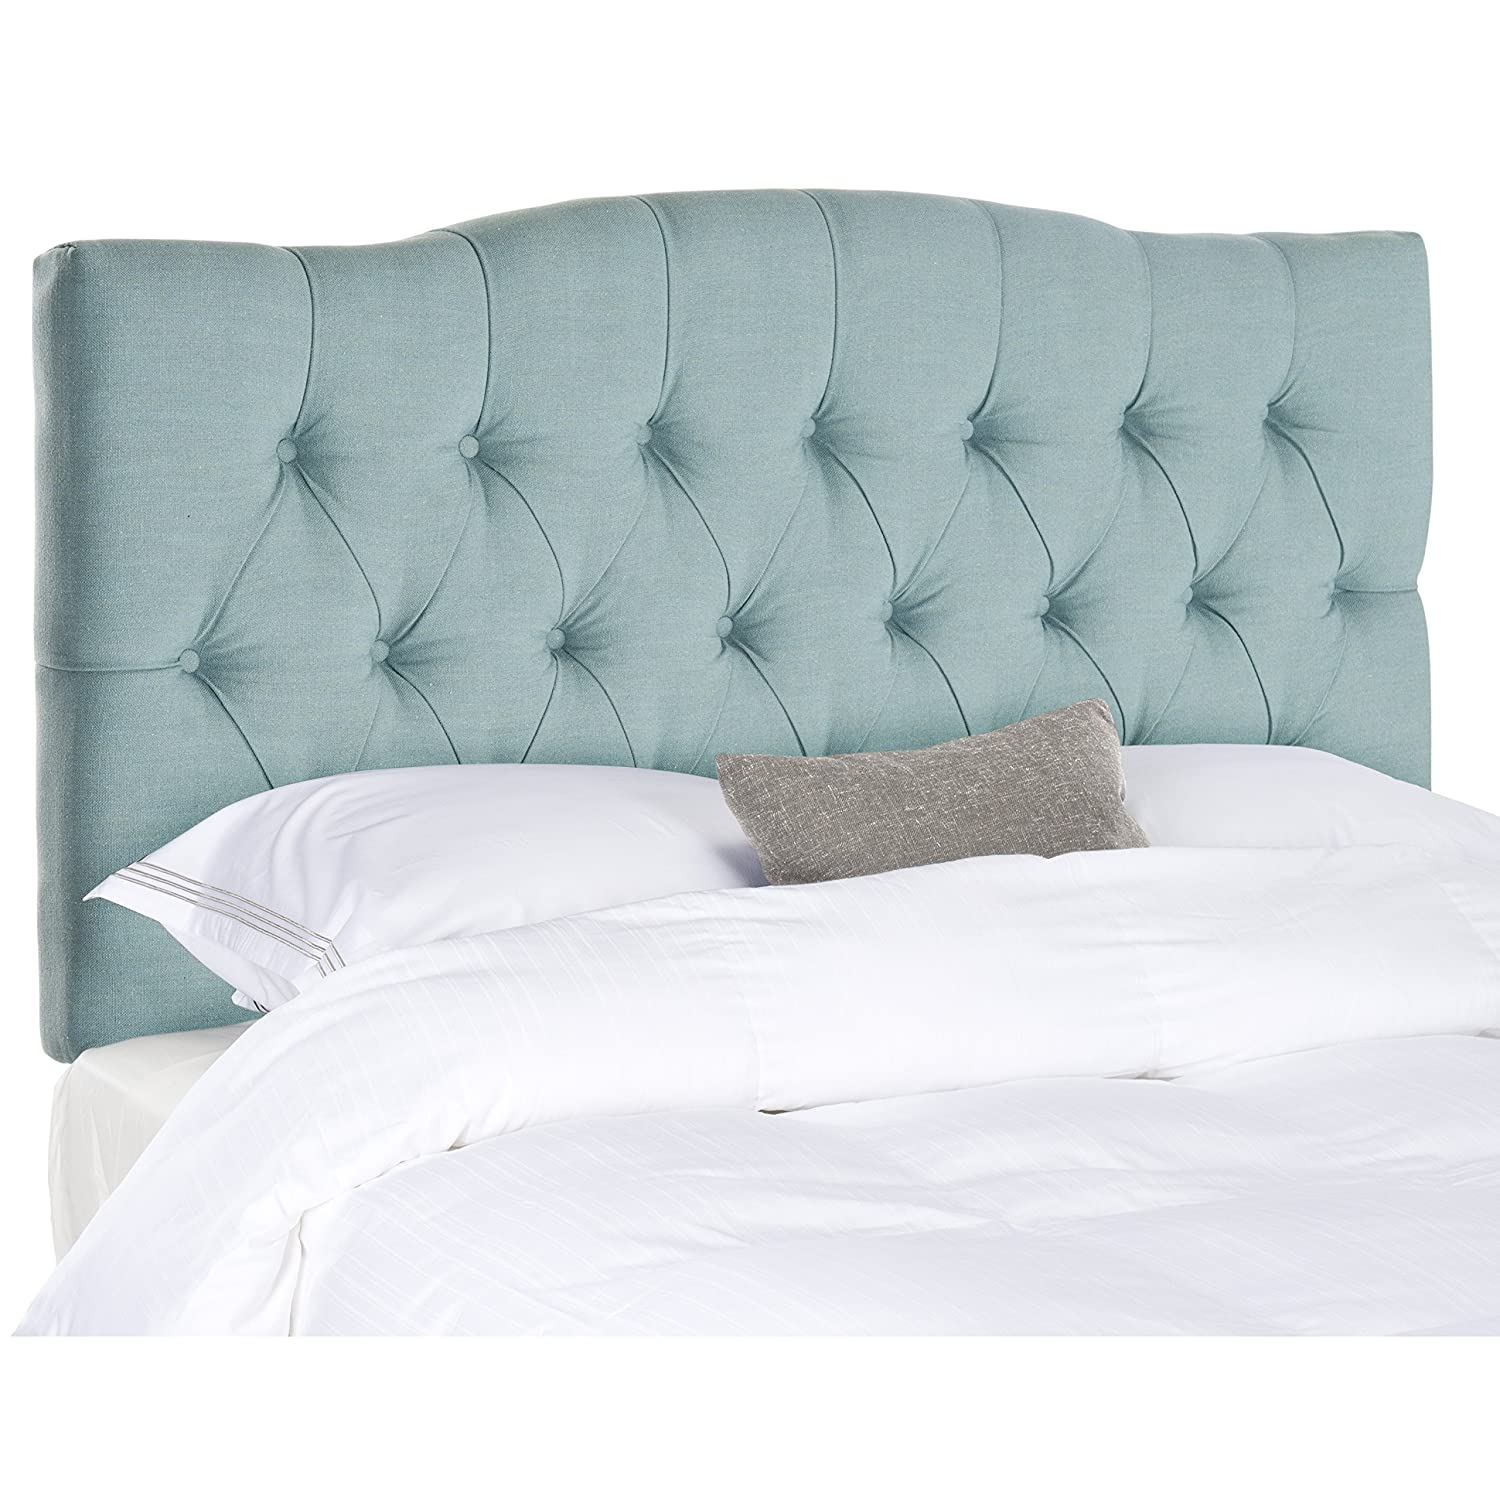 button everything tufted headboard turquoise nail upholstered